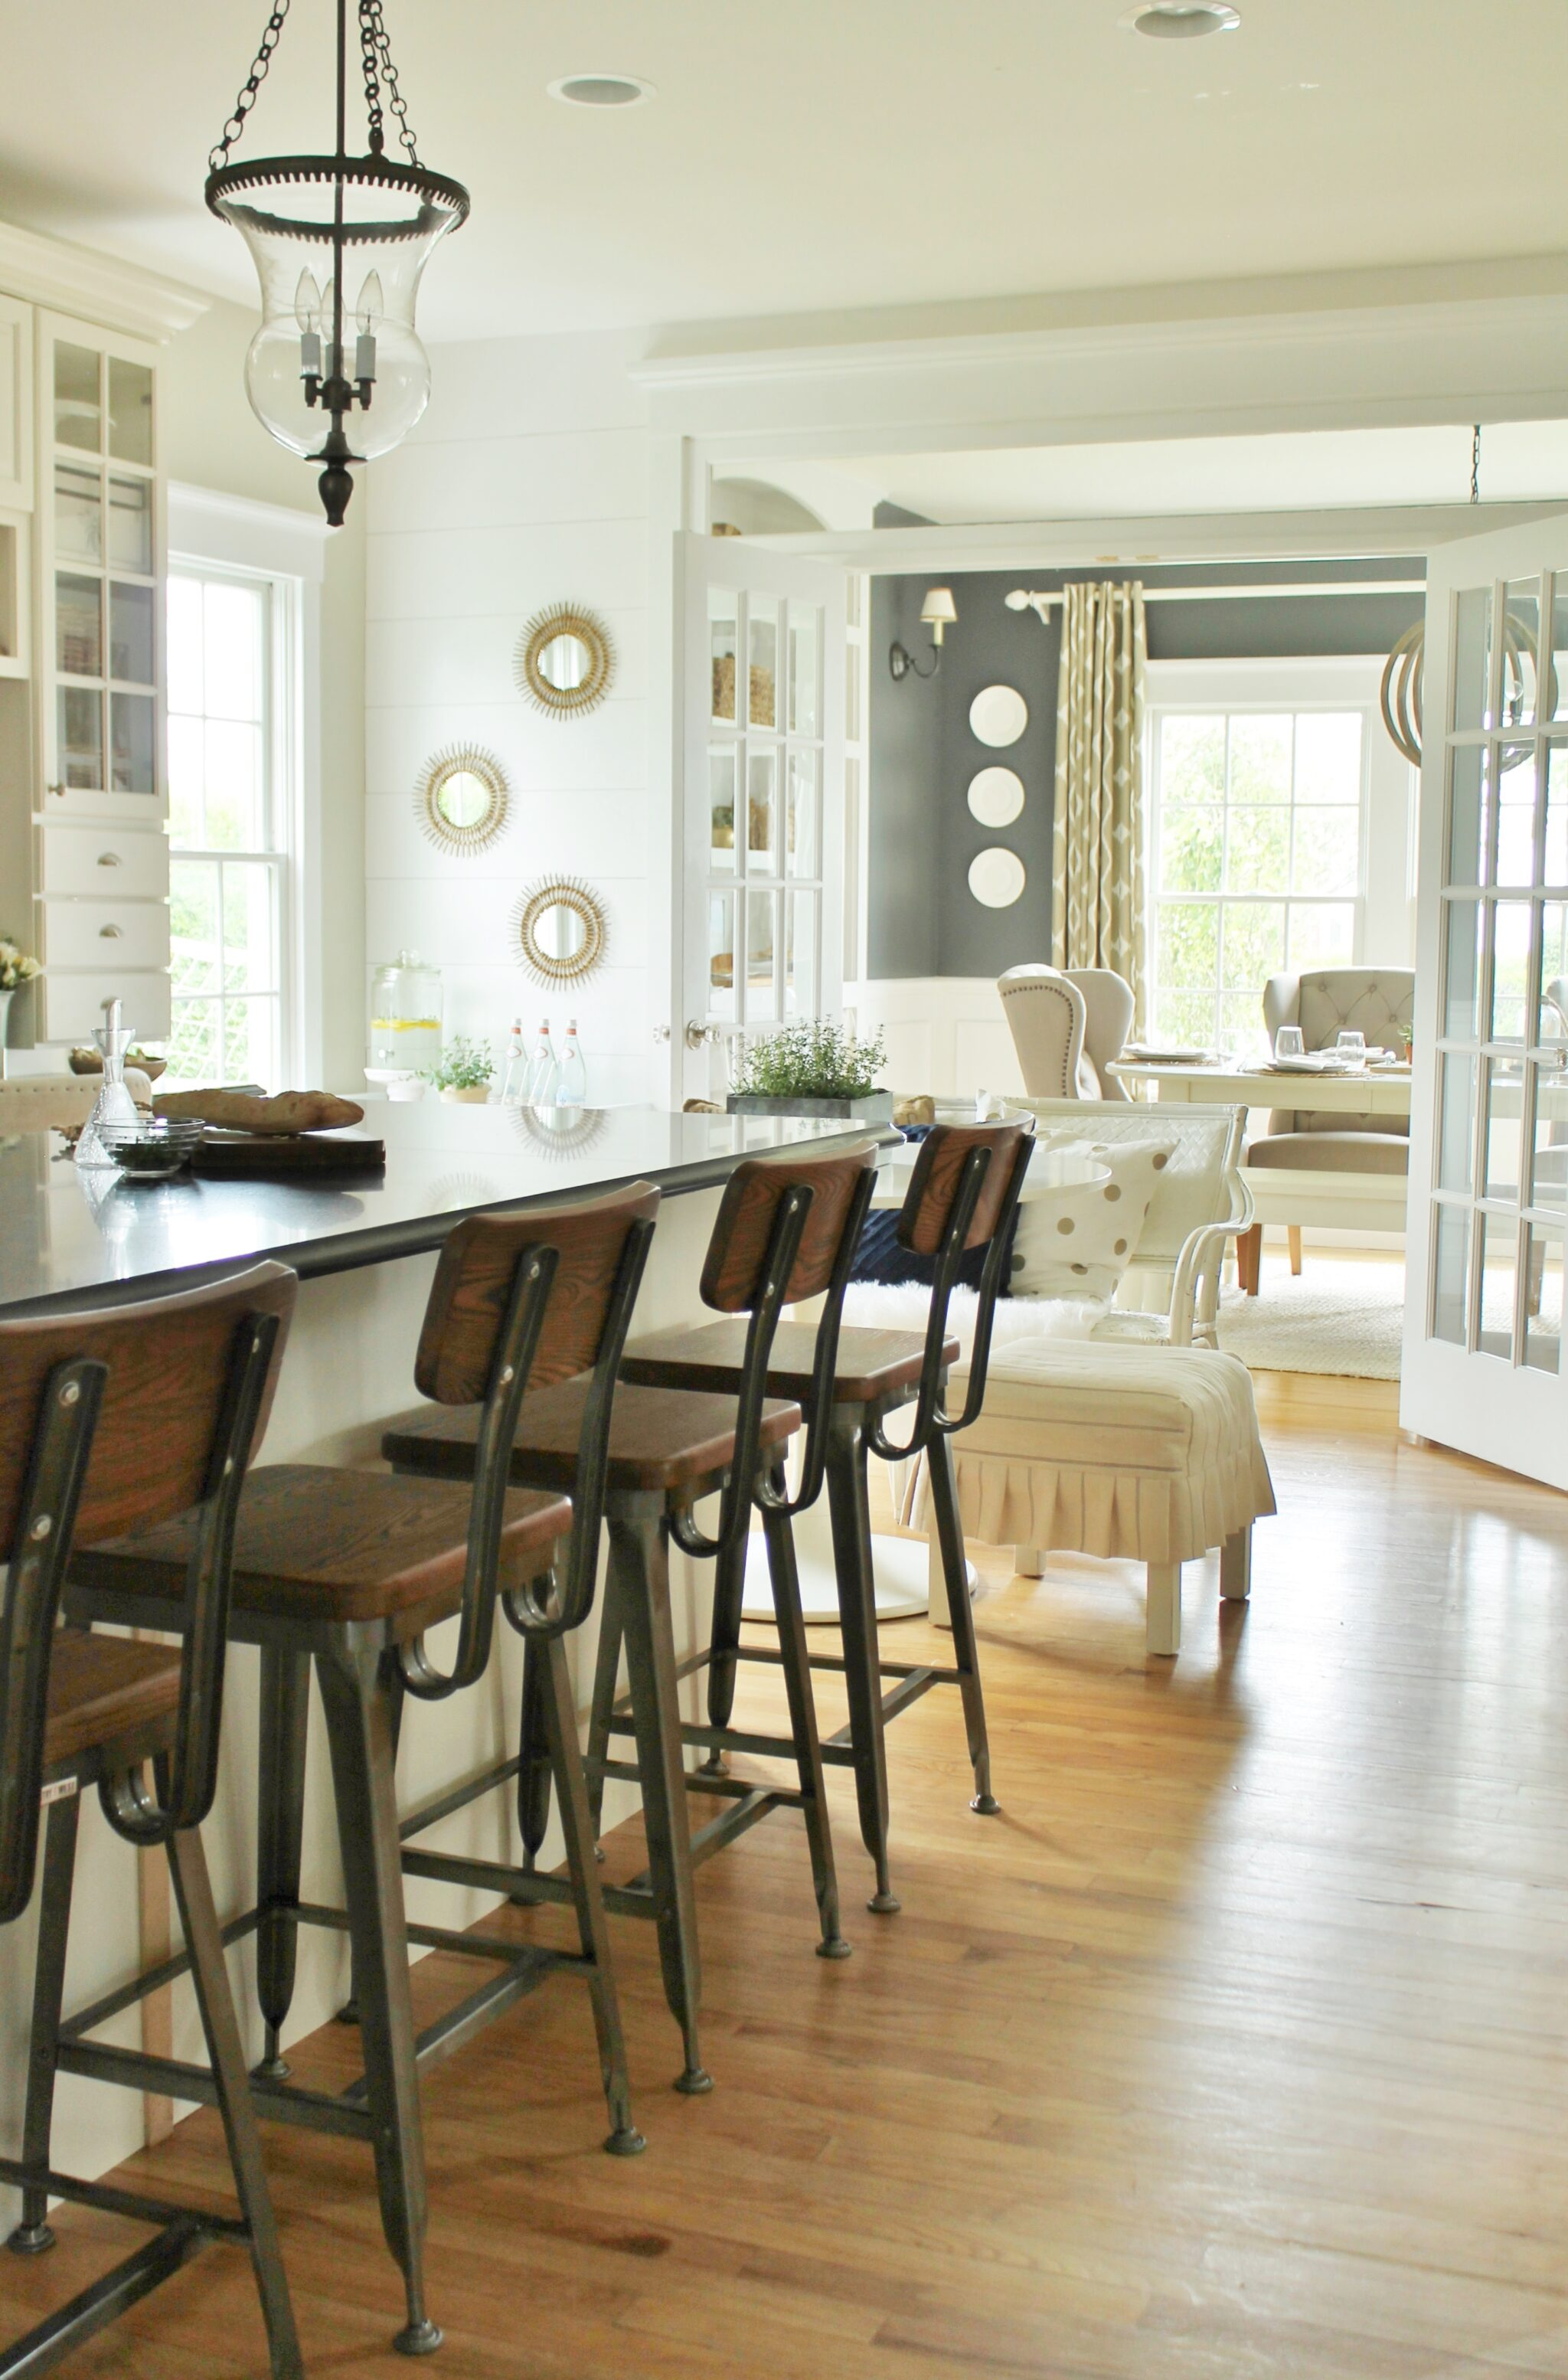 Modern Farmhouse Barstools u0026 White Kitchen & Modern Farmhouse Kitchen Barstools Revealed - City Farmhouse islam-shia.org